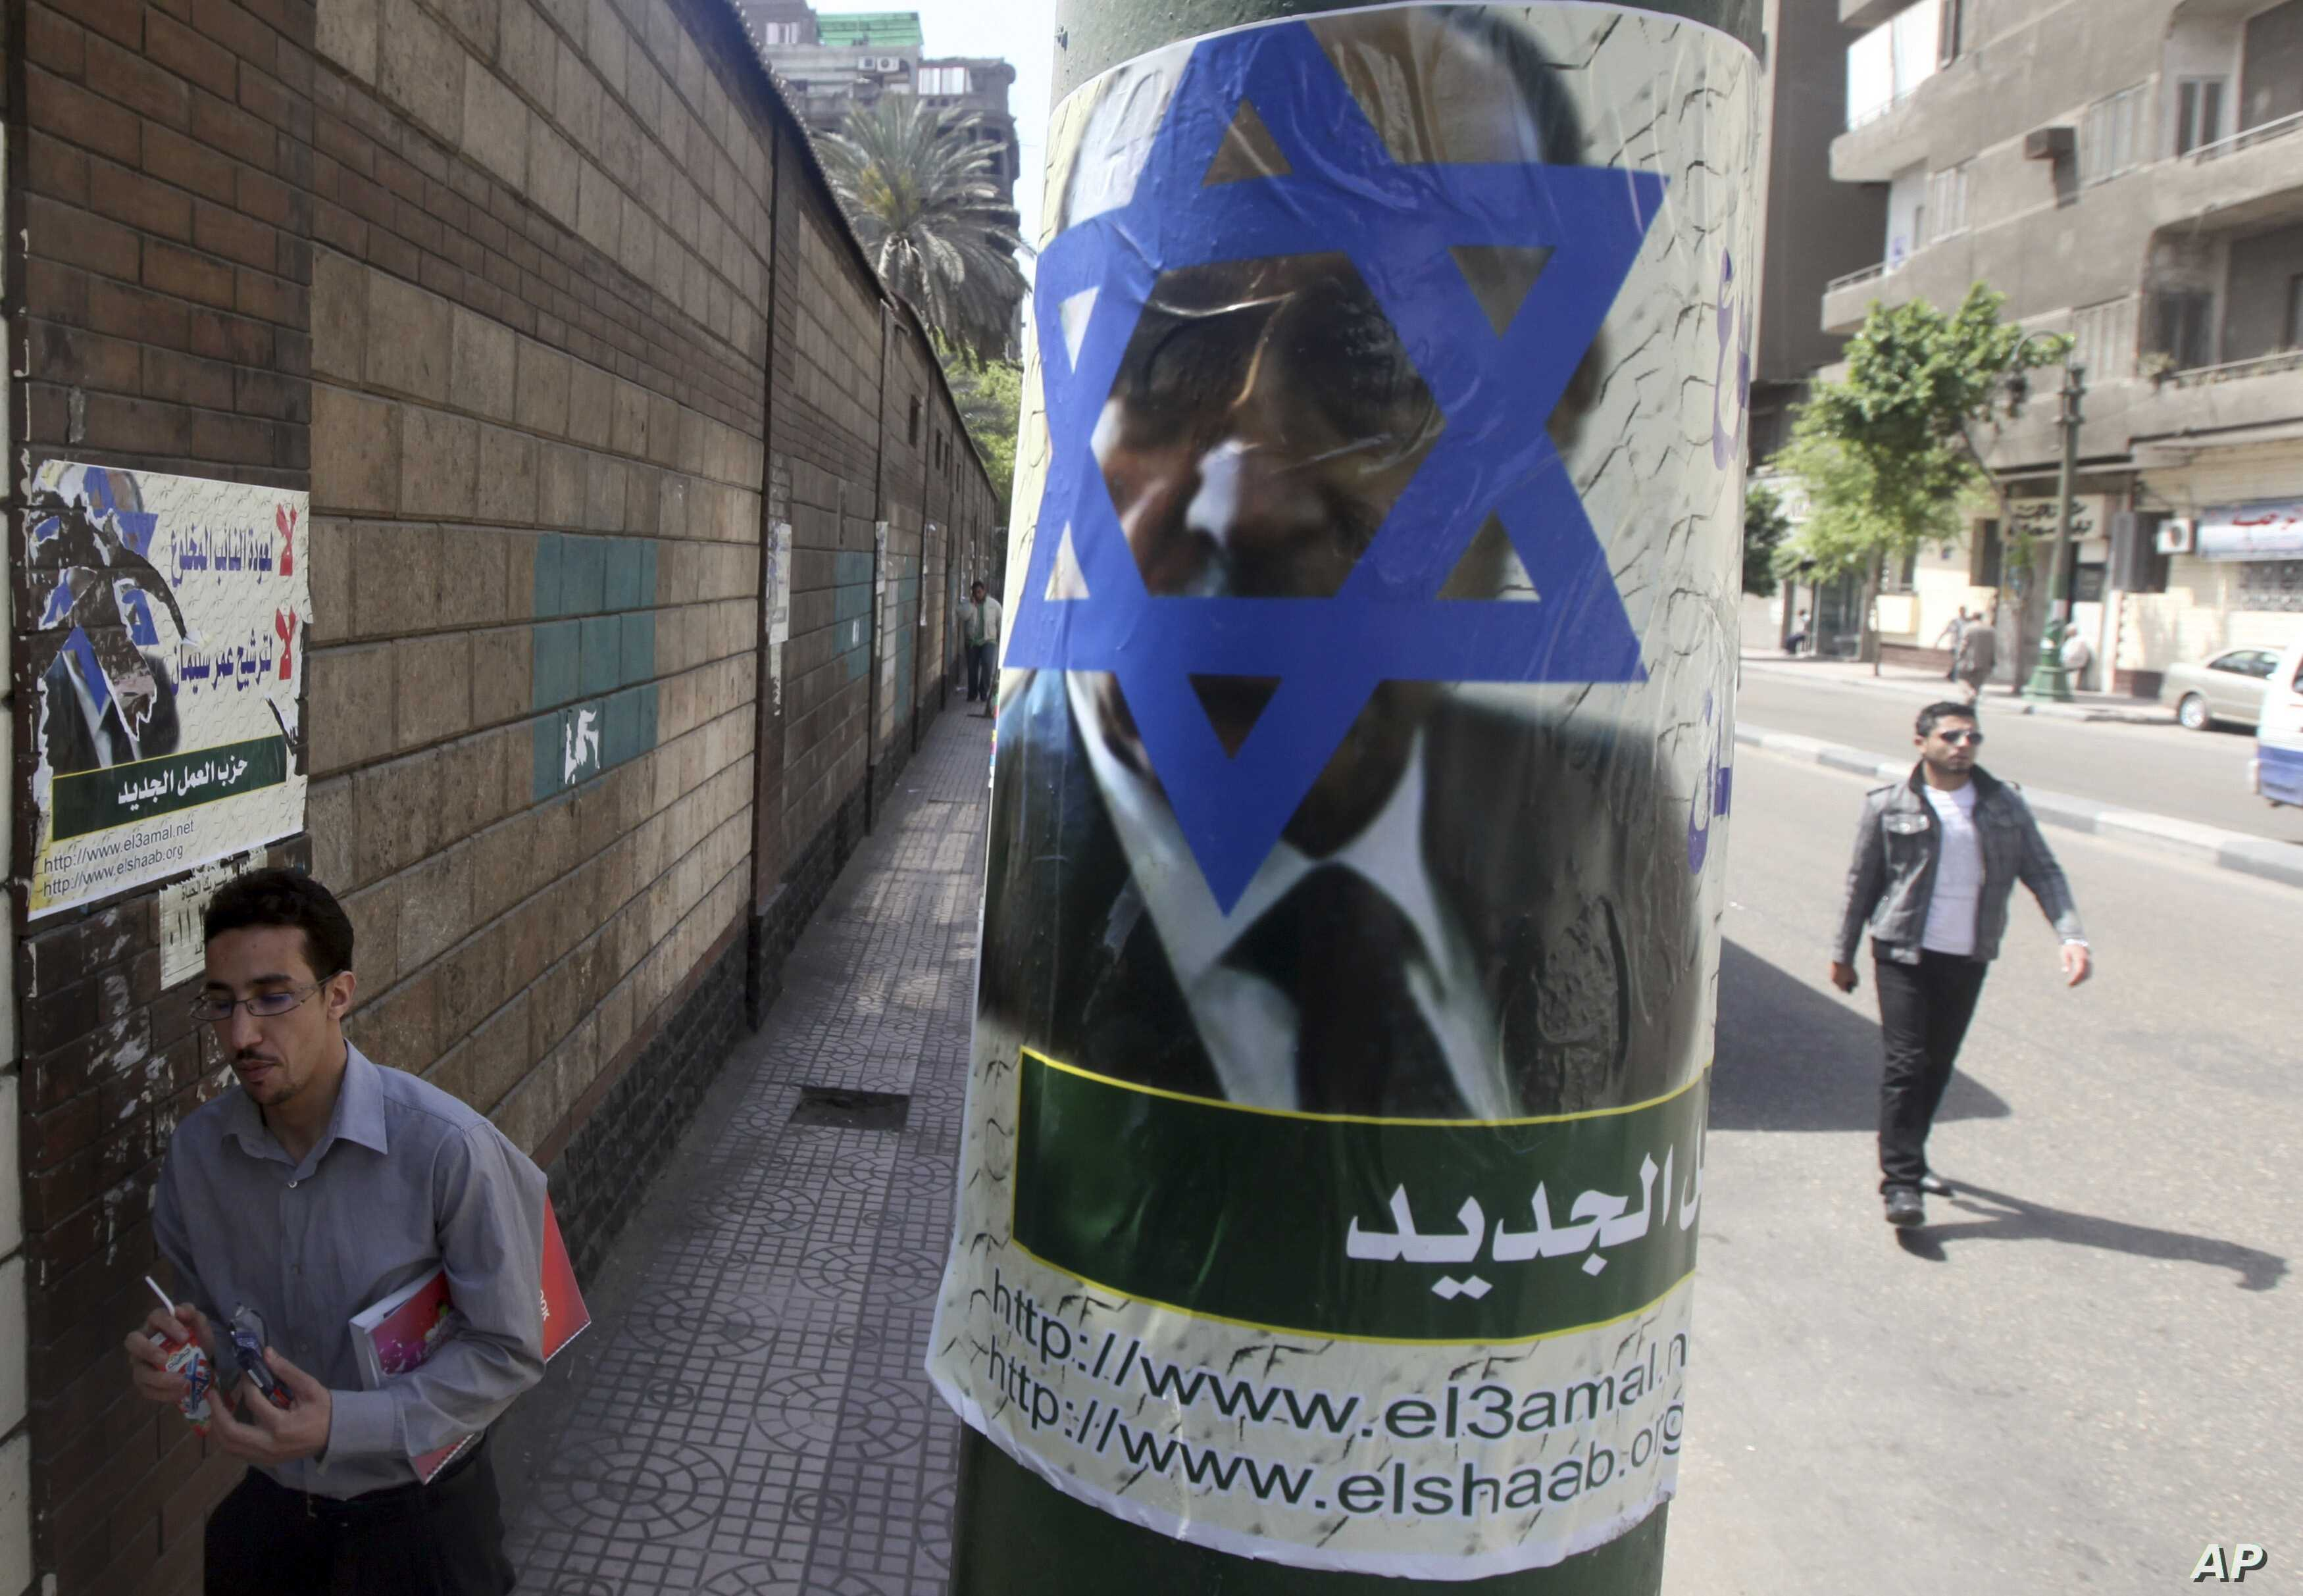 Poster created by the Egyptian Islamic Labour Party depicts former presidential candidate, and Egypt's former Vice President, Omar Suleiman, with the Star of David on his face, Cairo, April 12, 2012.